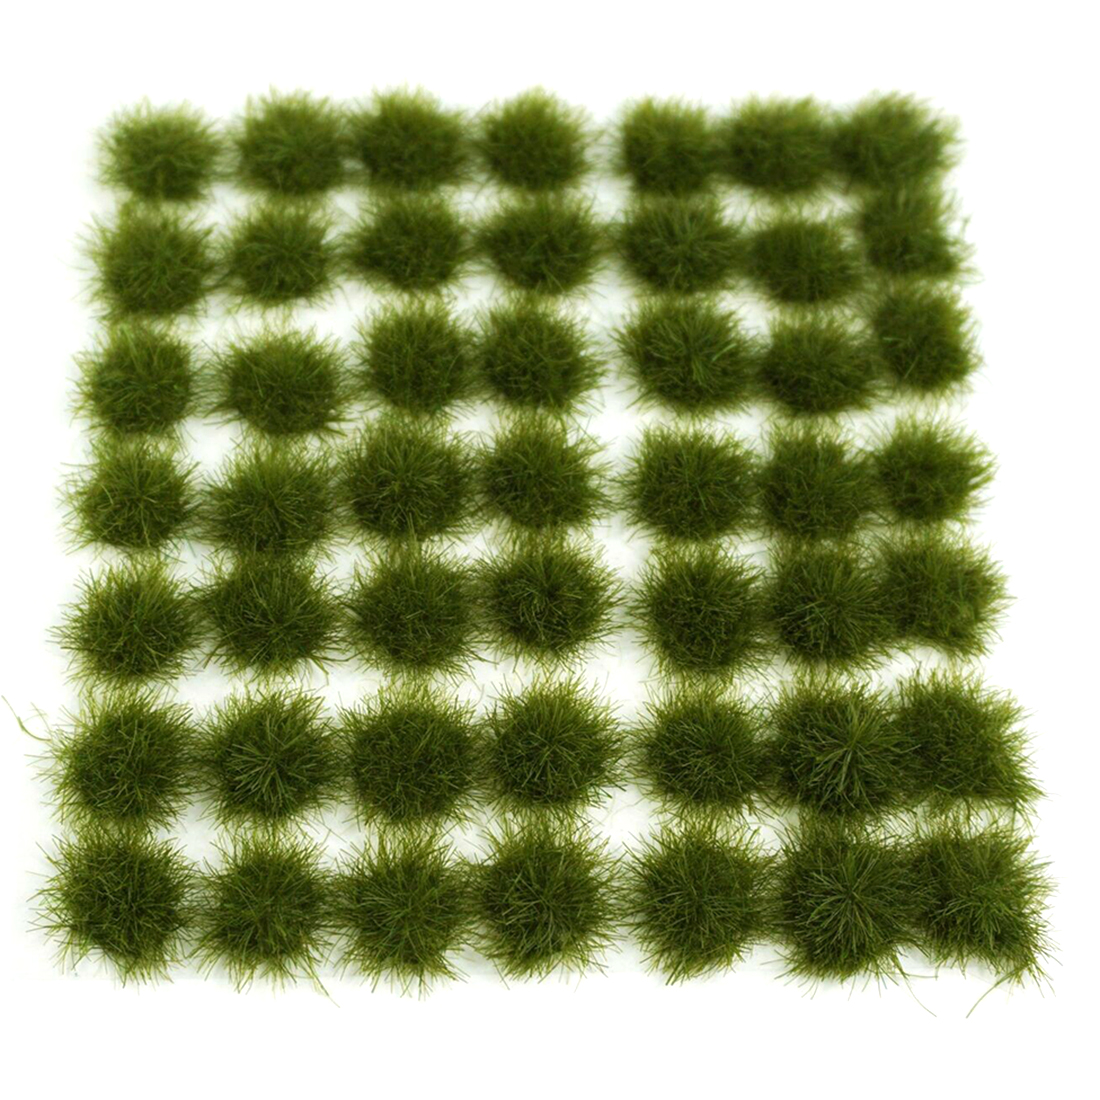 147Pcs Grass Cluster Static Grass Tufts For 1:35 1:48 1:72 1:87 Sand Table Architecture Model Model Building Kits - Dark Green